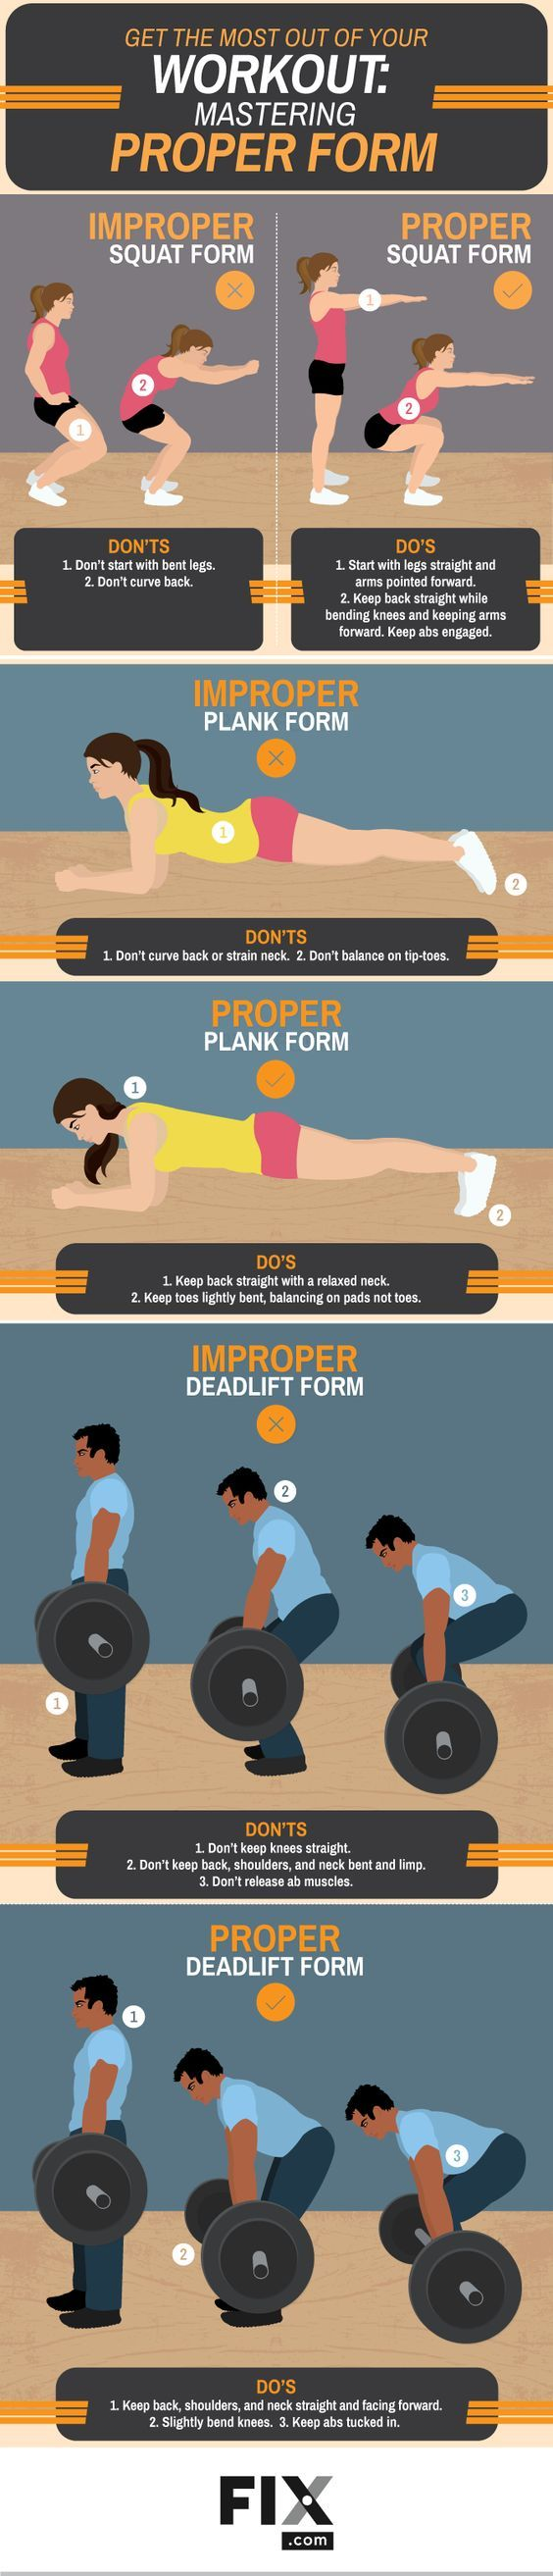 Get the Most Out of Your Workout: Mastering Proper Form #Infographic